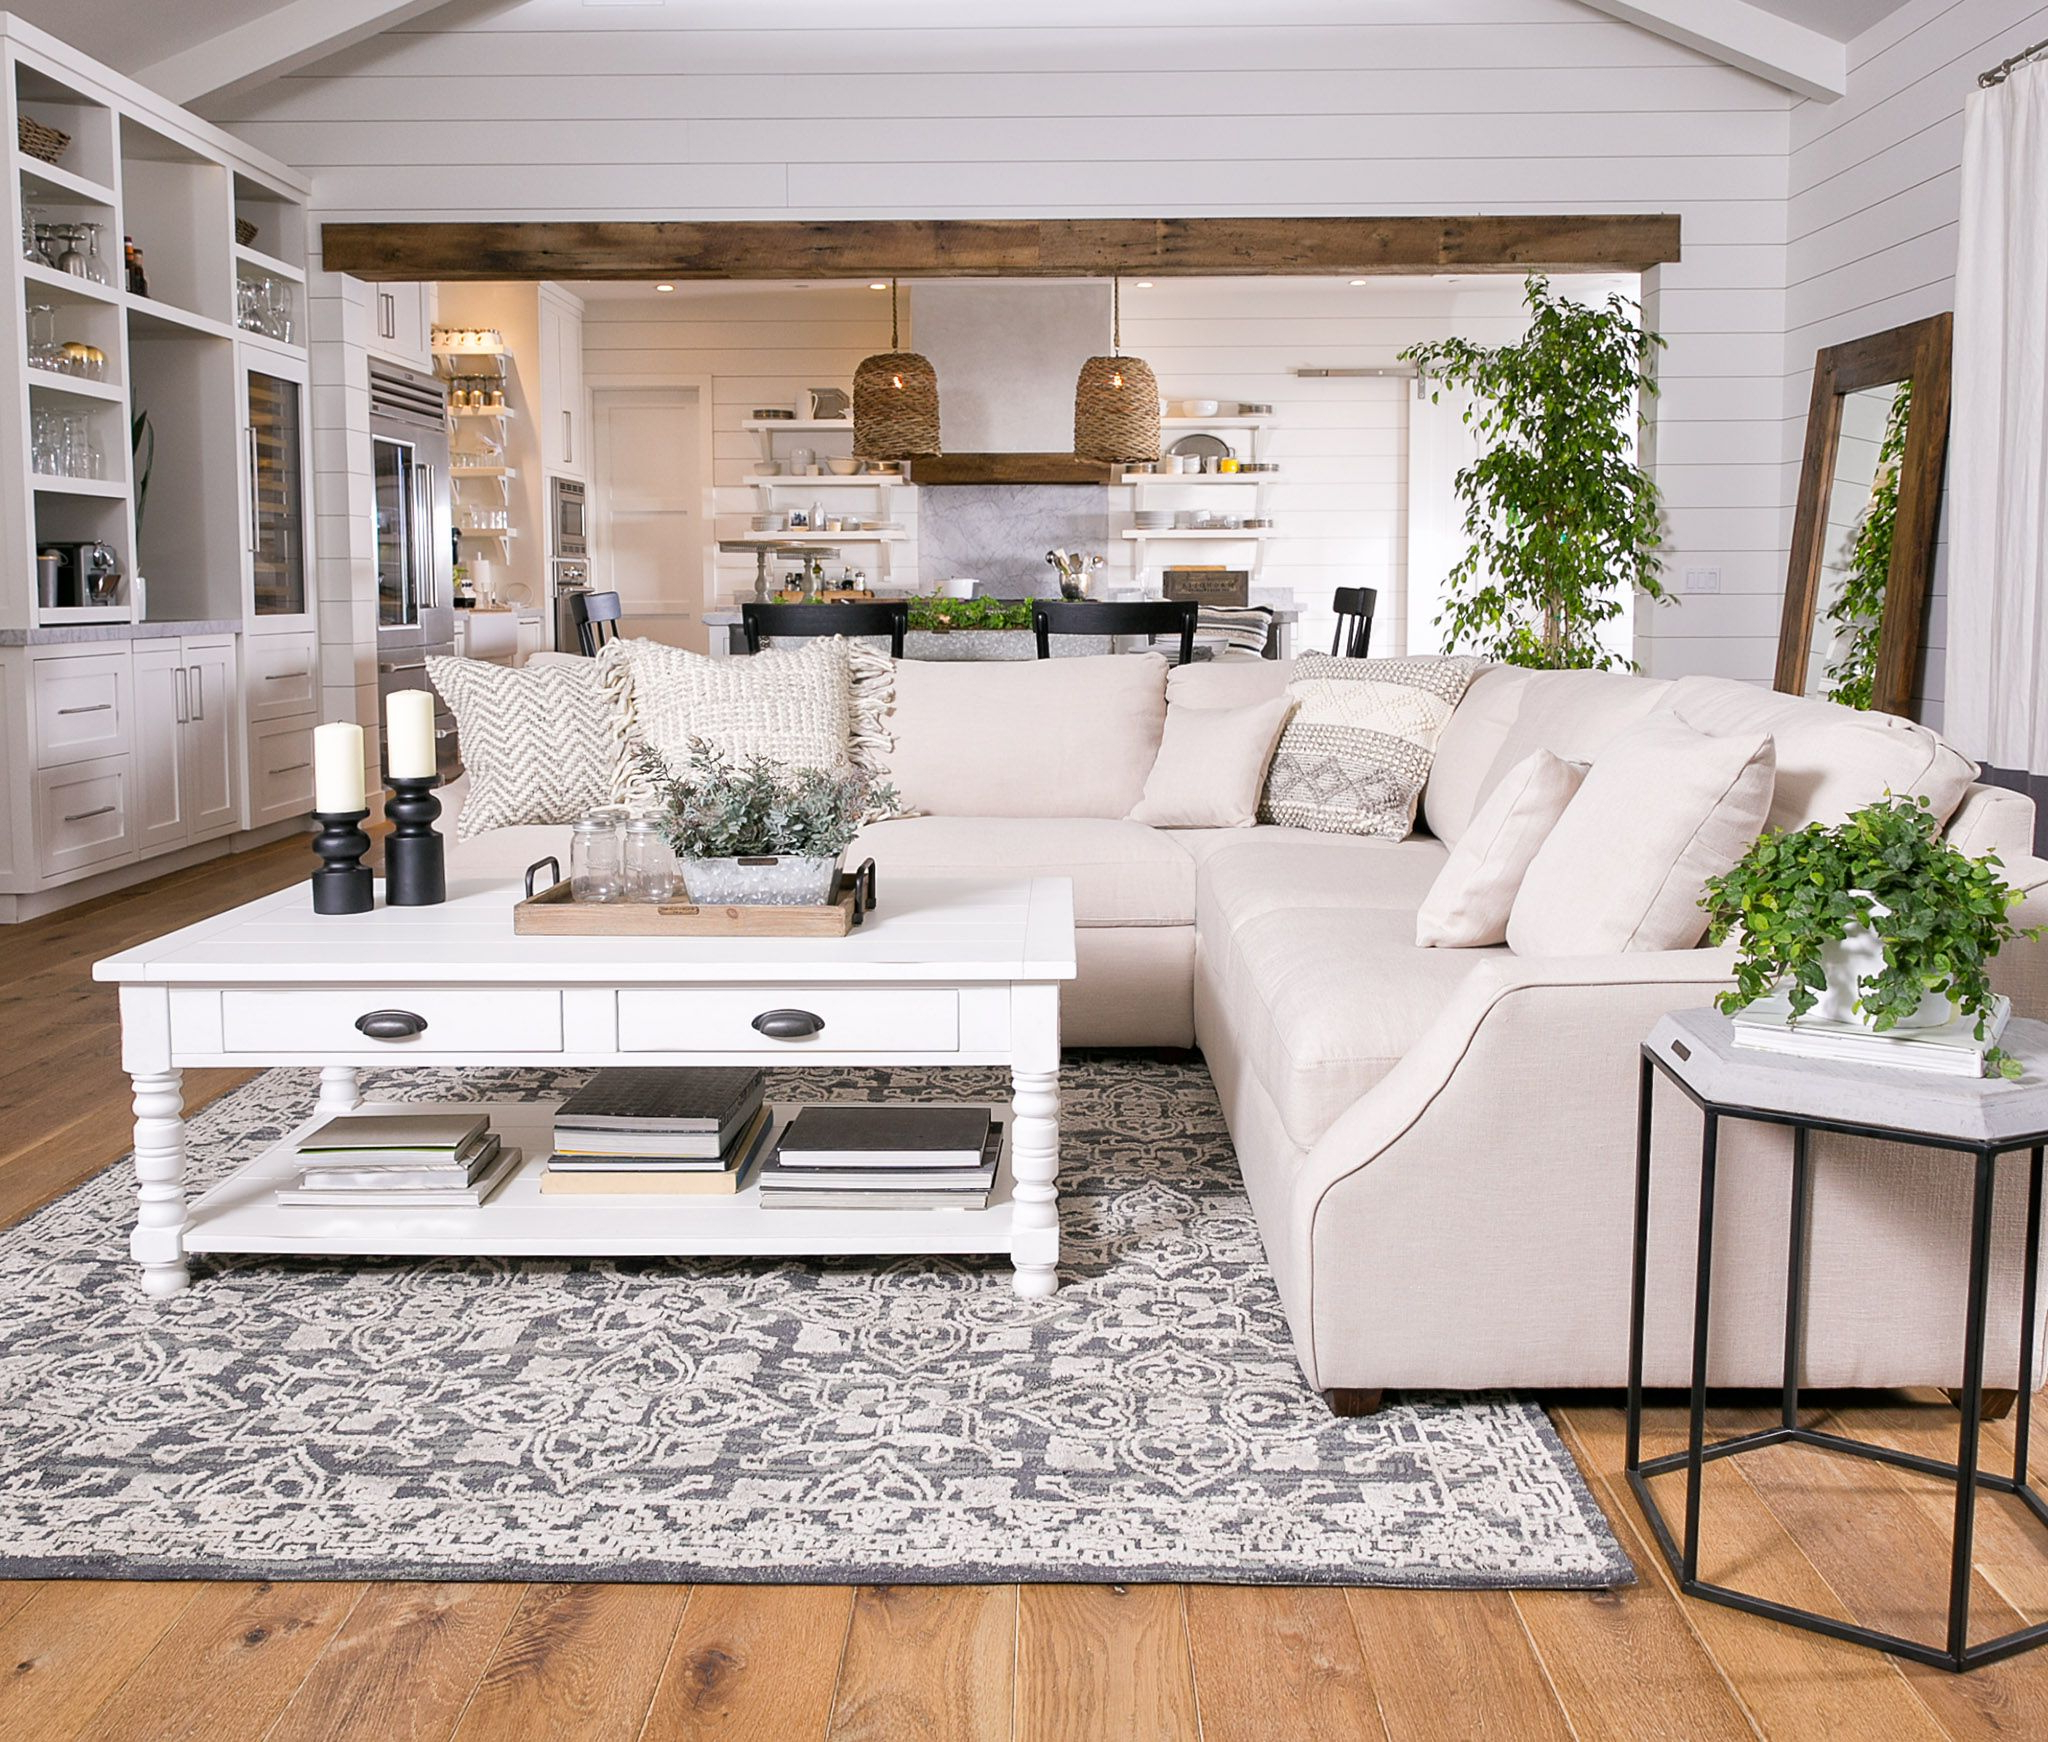 Magnolia Home Homestead 3 Piece Sectionaljoanna Gaines Intended For Most Recently Released Magnolia Home Homestead 3 Piece Sectionals By Joanna Gaines (View 10 of 20)